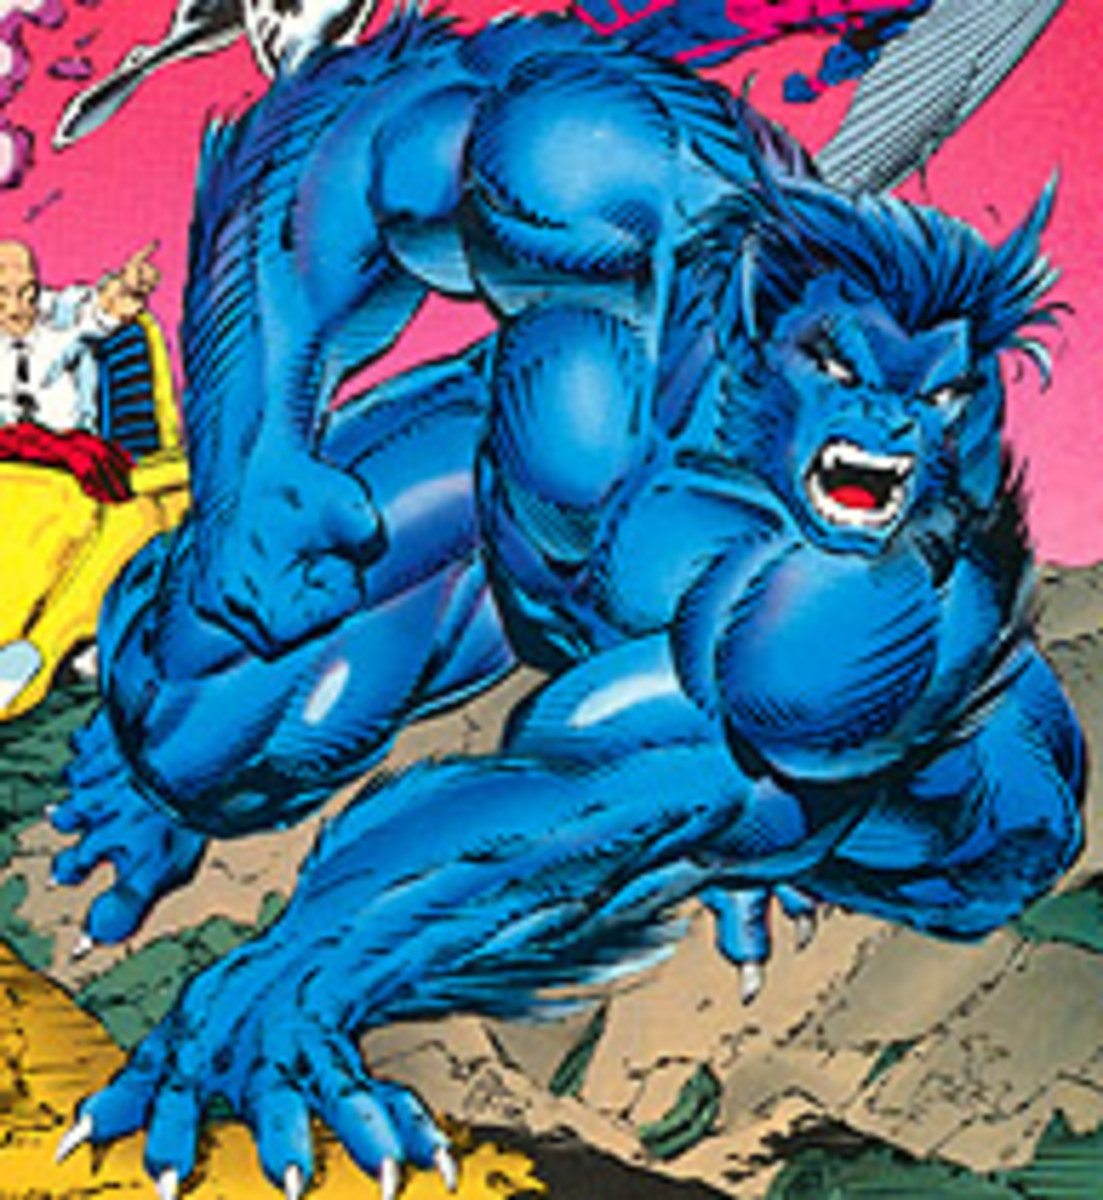 Beast from the cover of X-Men 1